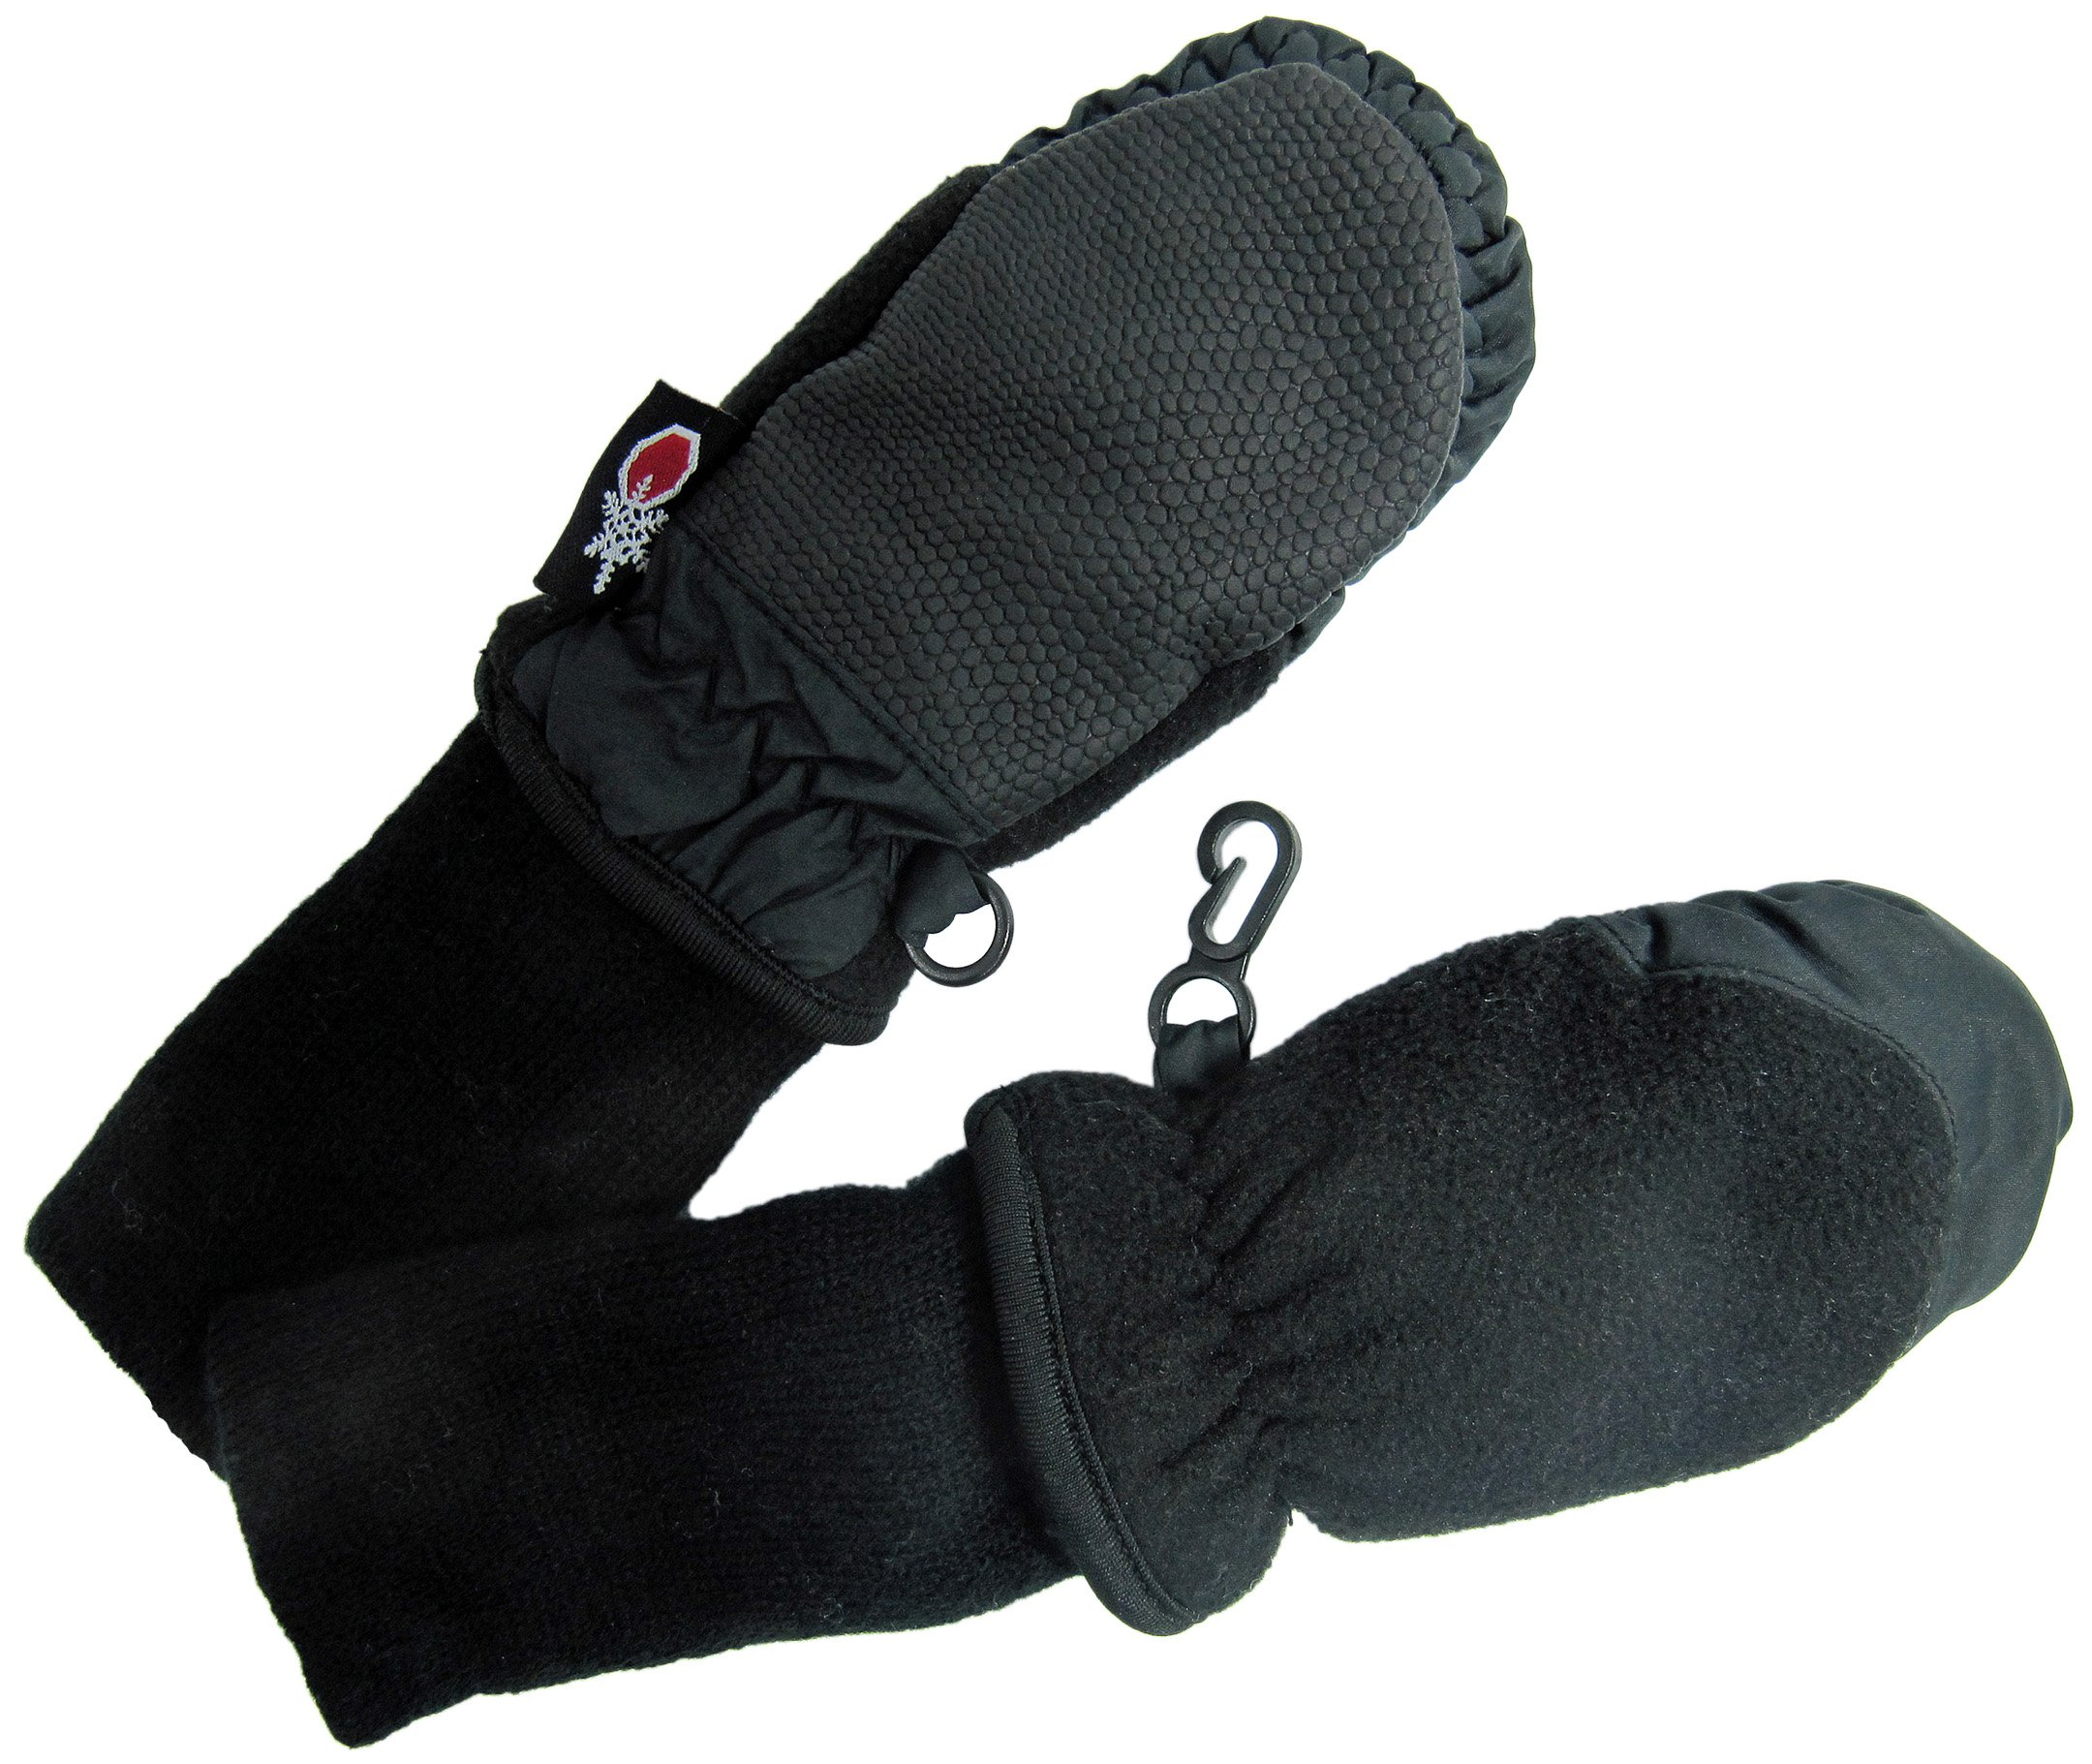 SnowStoppers Kid's Waterproof Stay On Winter Fleece Mittens Extra Small / 6-18 Months Black